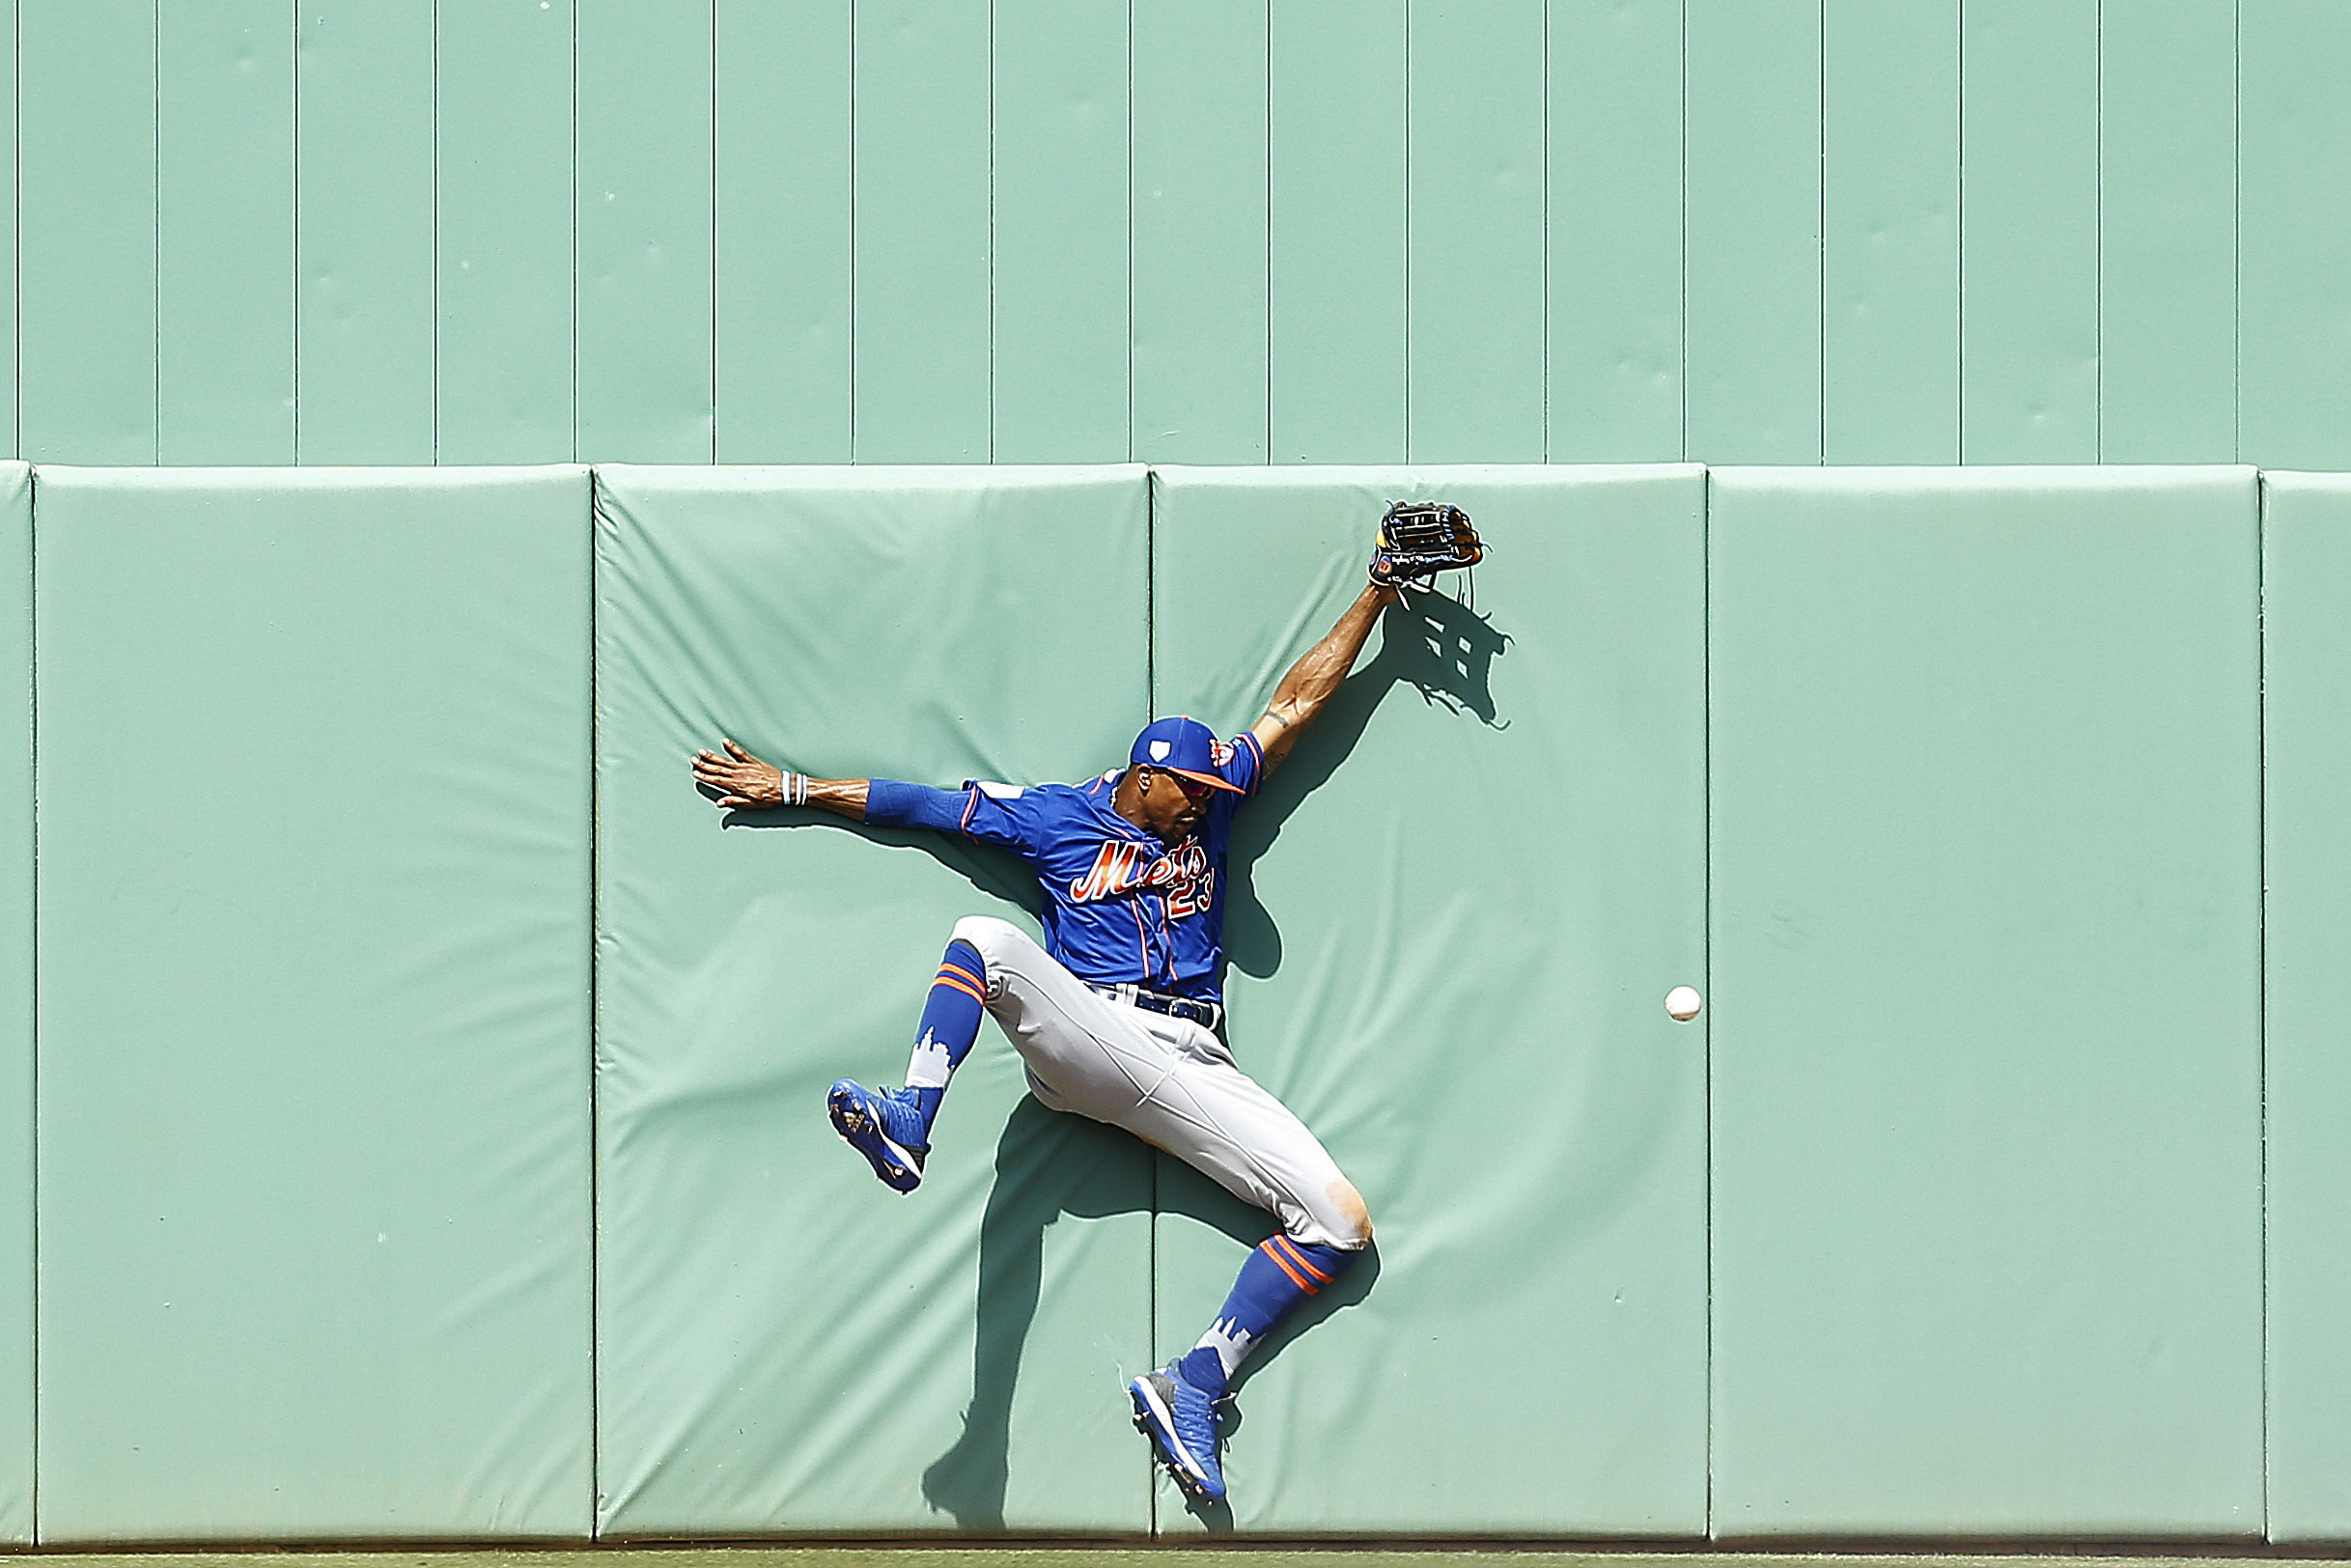 Keon Broxton of the New York Mets crashes into the wall as he attempts to catch a fly ball in the sixth inning of a Grapefrui